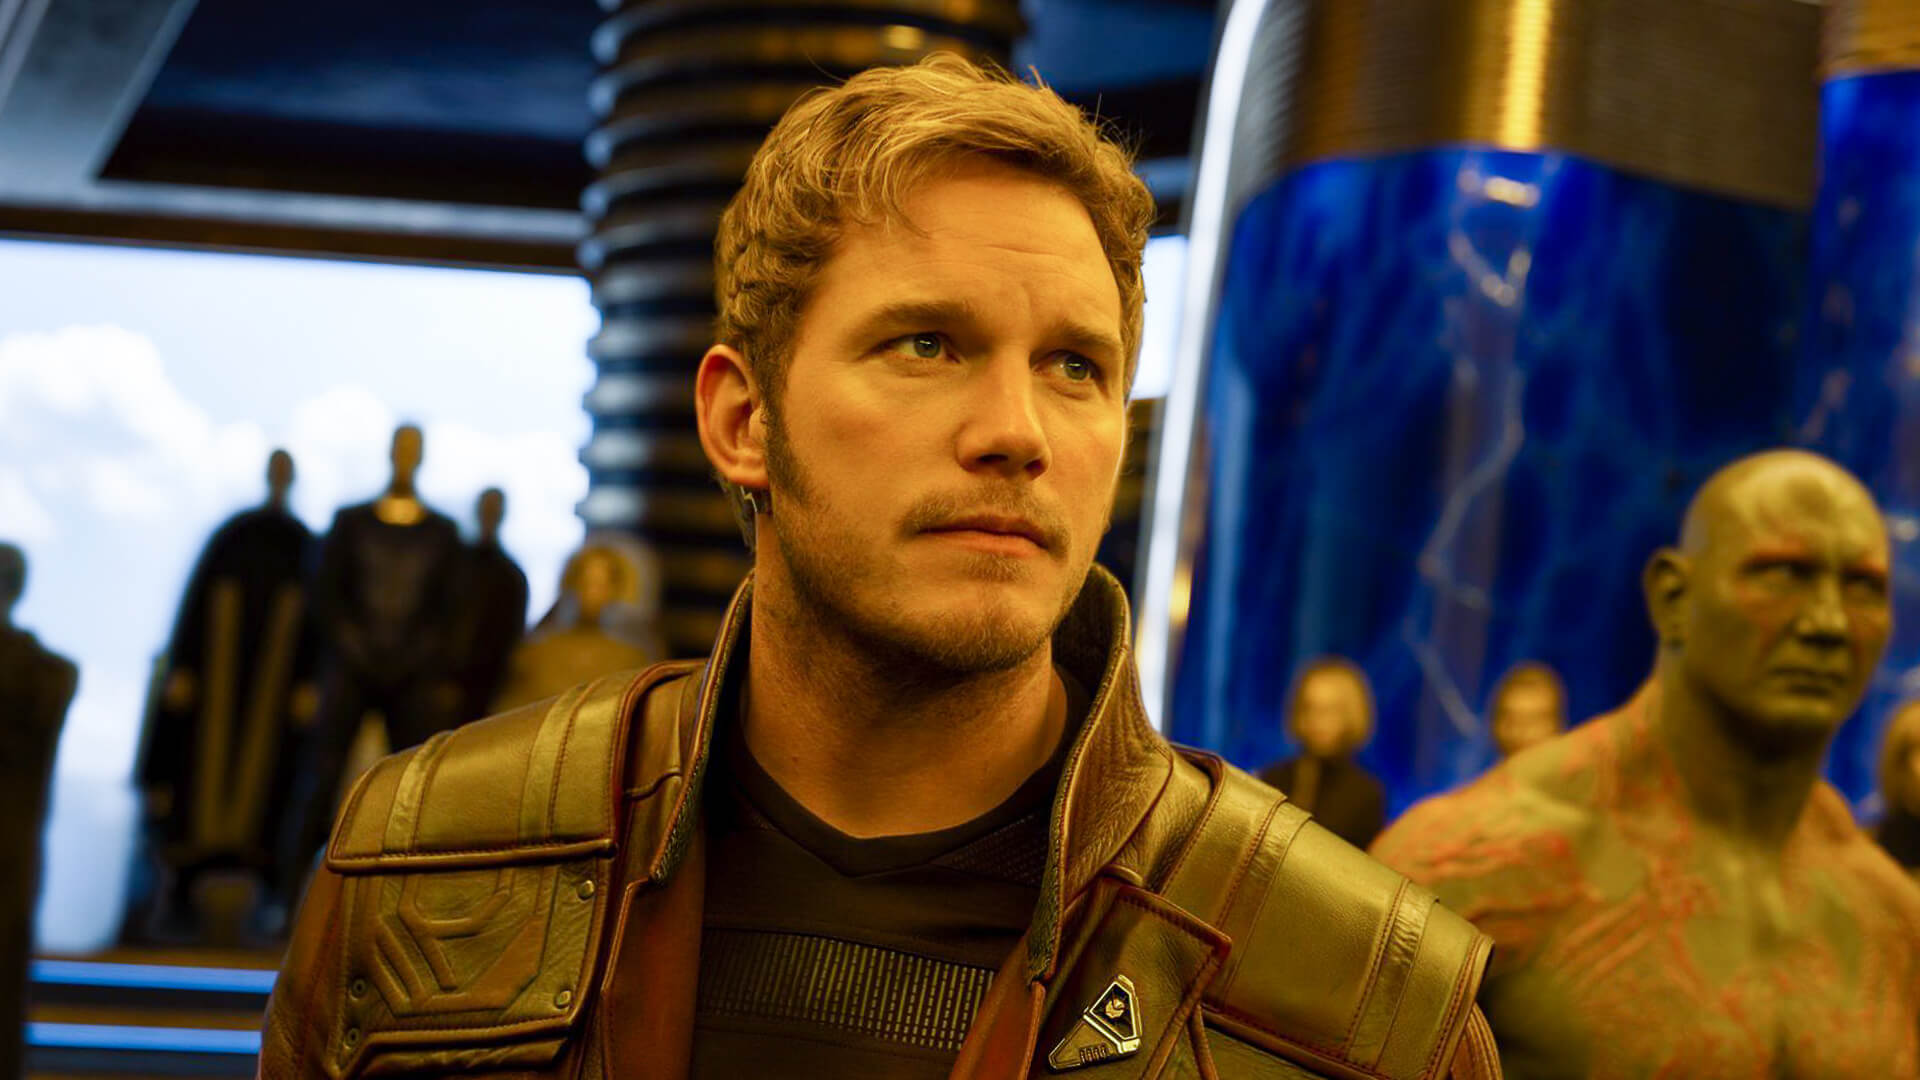 How Much Is Chris Pratt Worth? A Look at the Finances of the